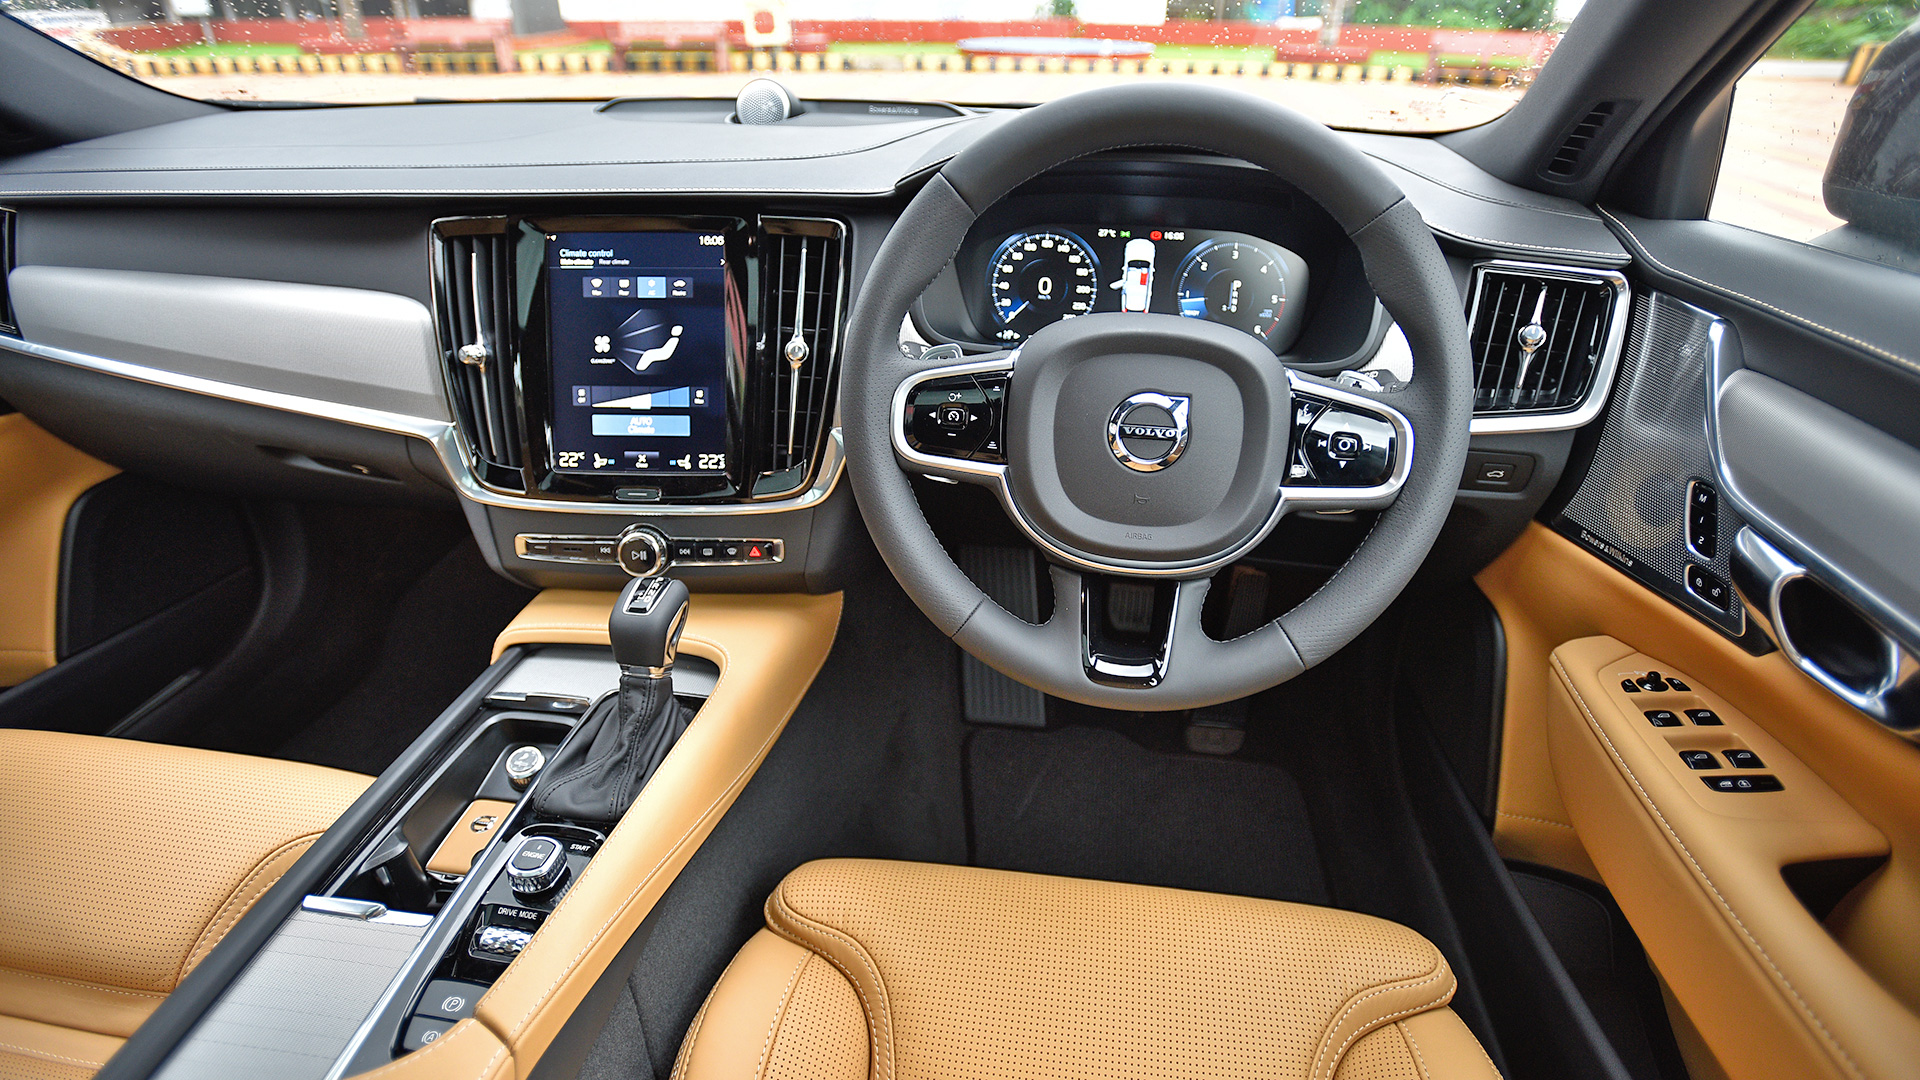 Volvo V90 Cross Country 2017 Diesel Std Interior Car Photos - Overdrive